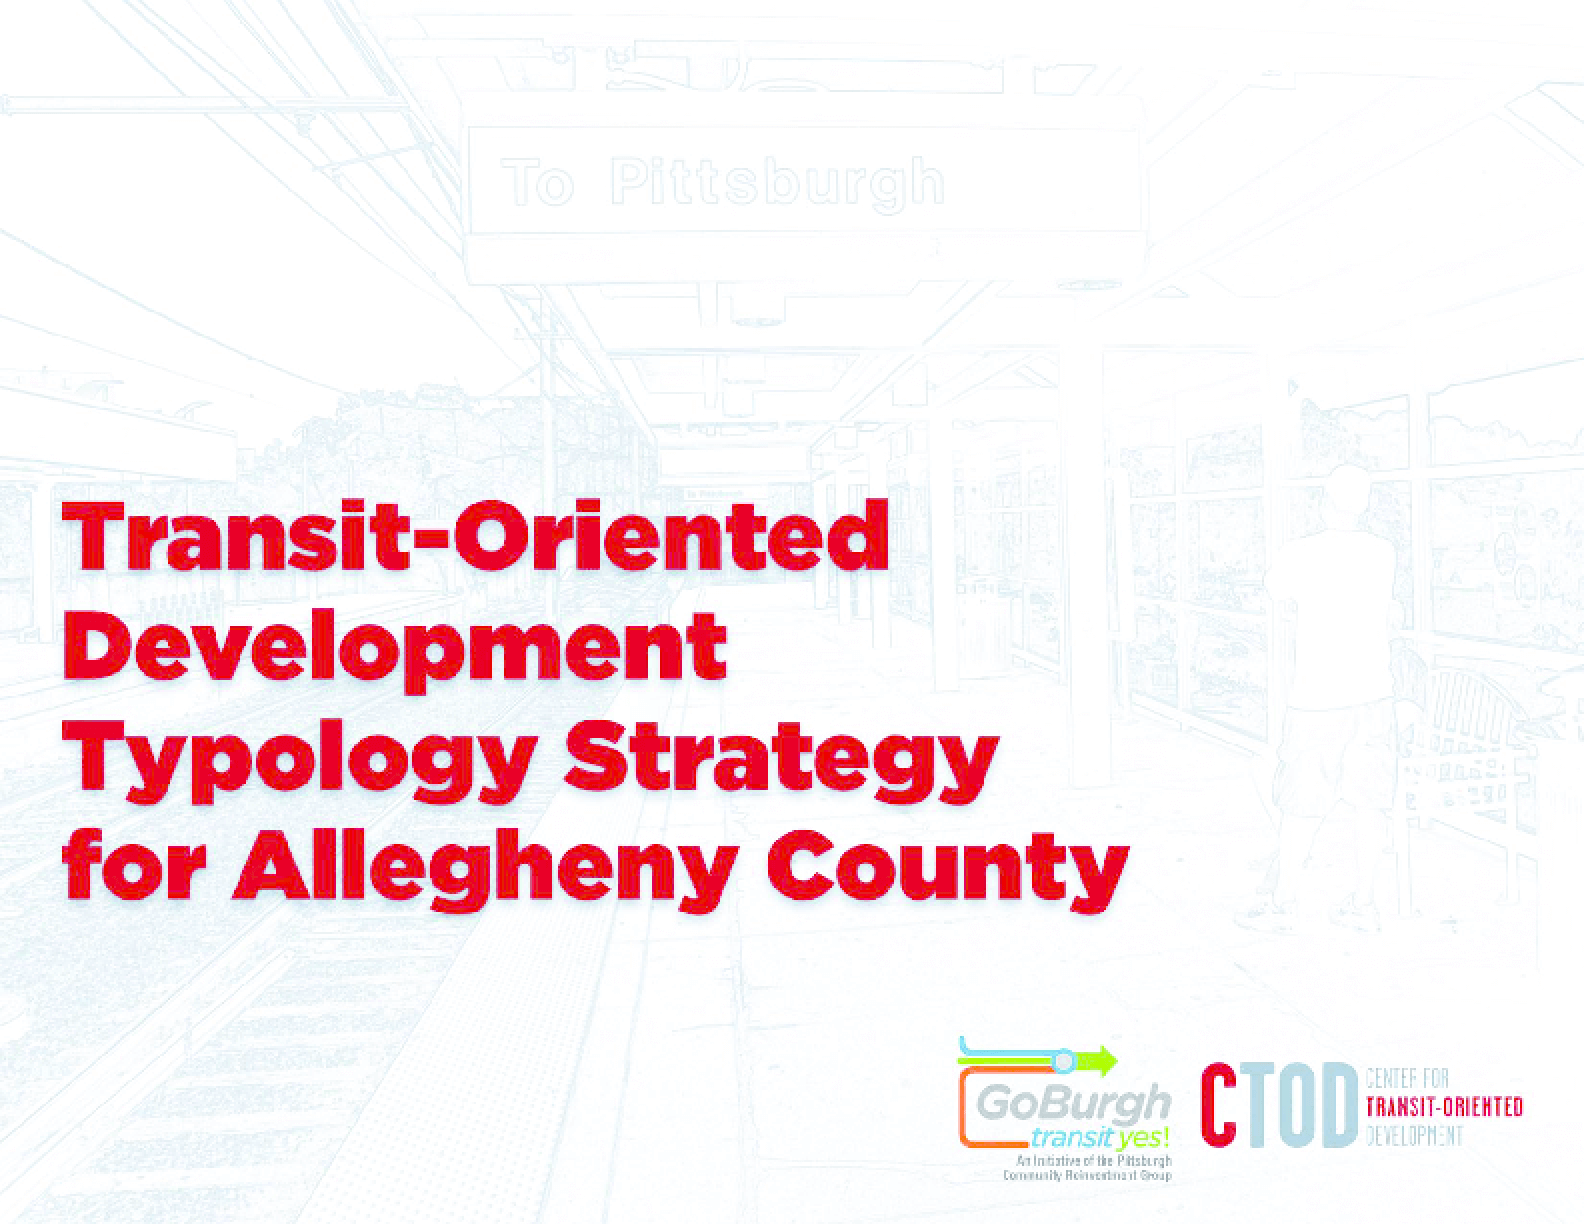 Transit-Oriented Development Strategy for Allegheny County